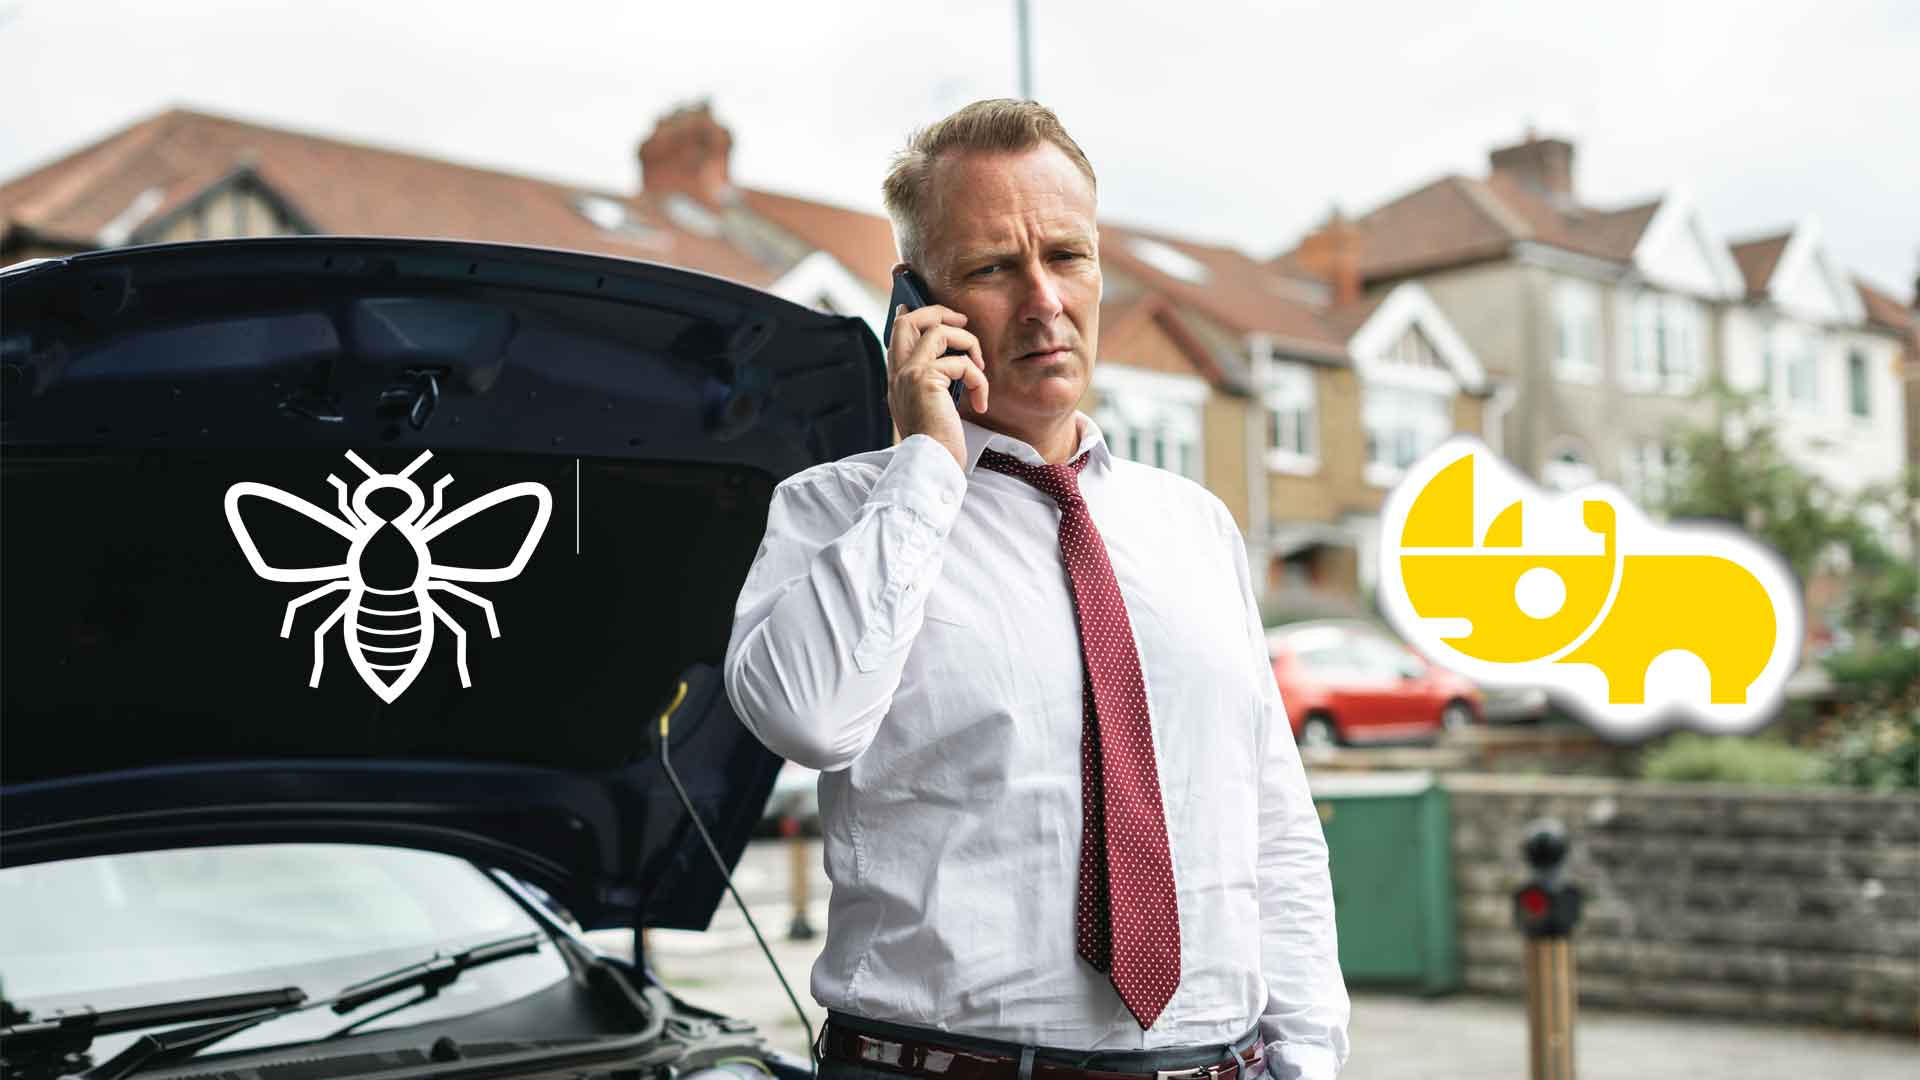 Man on phone with broken down car asking about Jump Starters